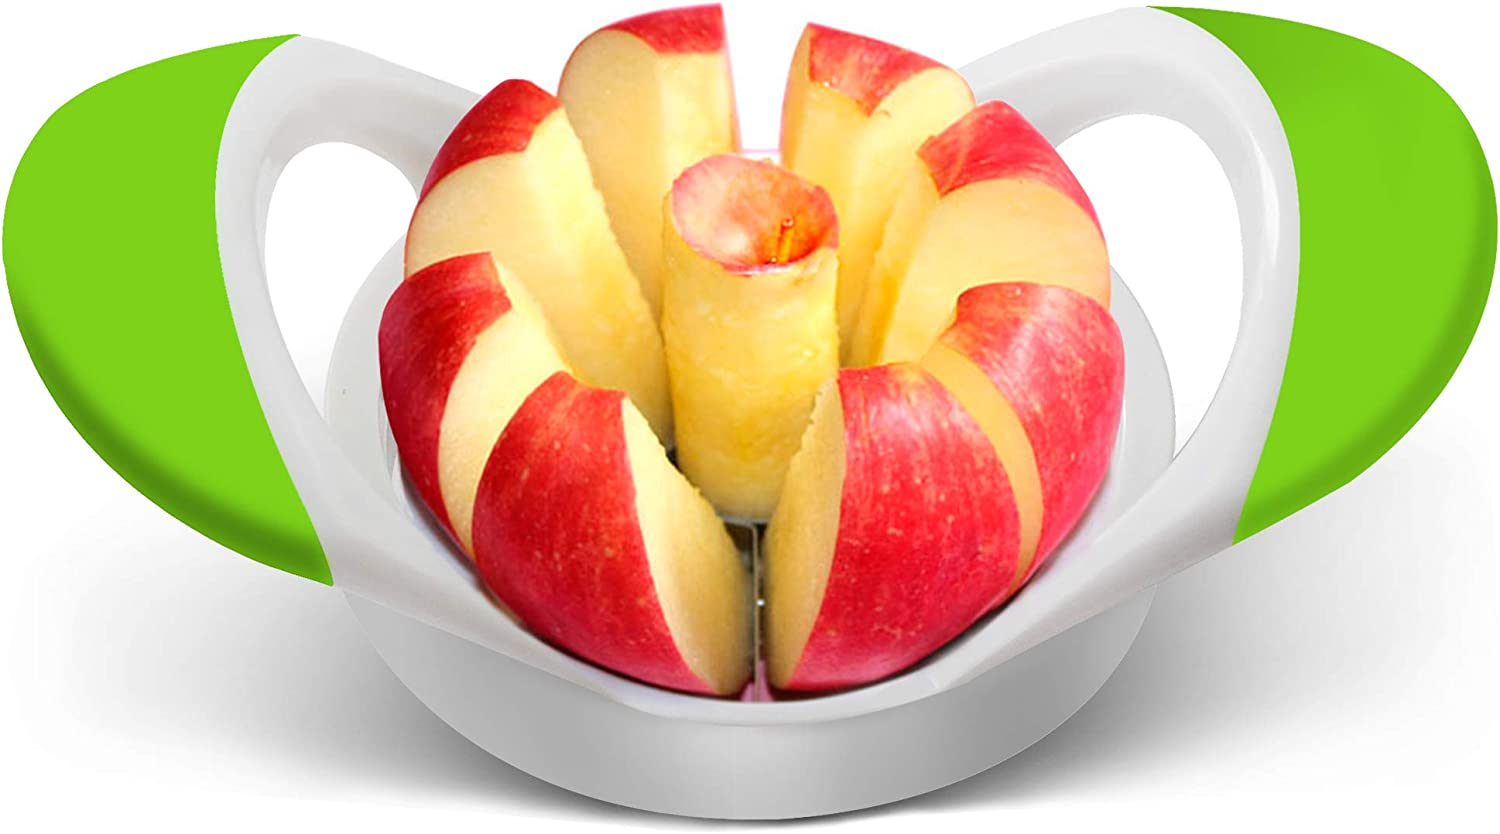 Warmheart Apple Slicer Cutter and Corer Apple Wedger Stainless Steel - 8 Sharp Blades and Easy Grip Ergonomic Rubber Grip Handle Tool Fruit Cutter (Green)